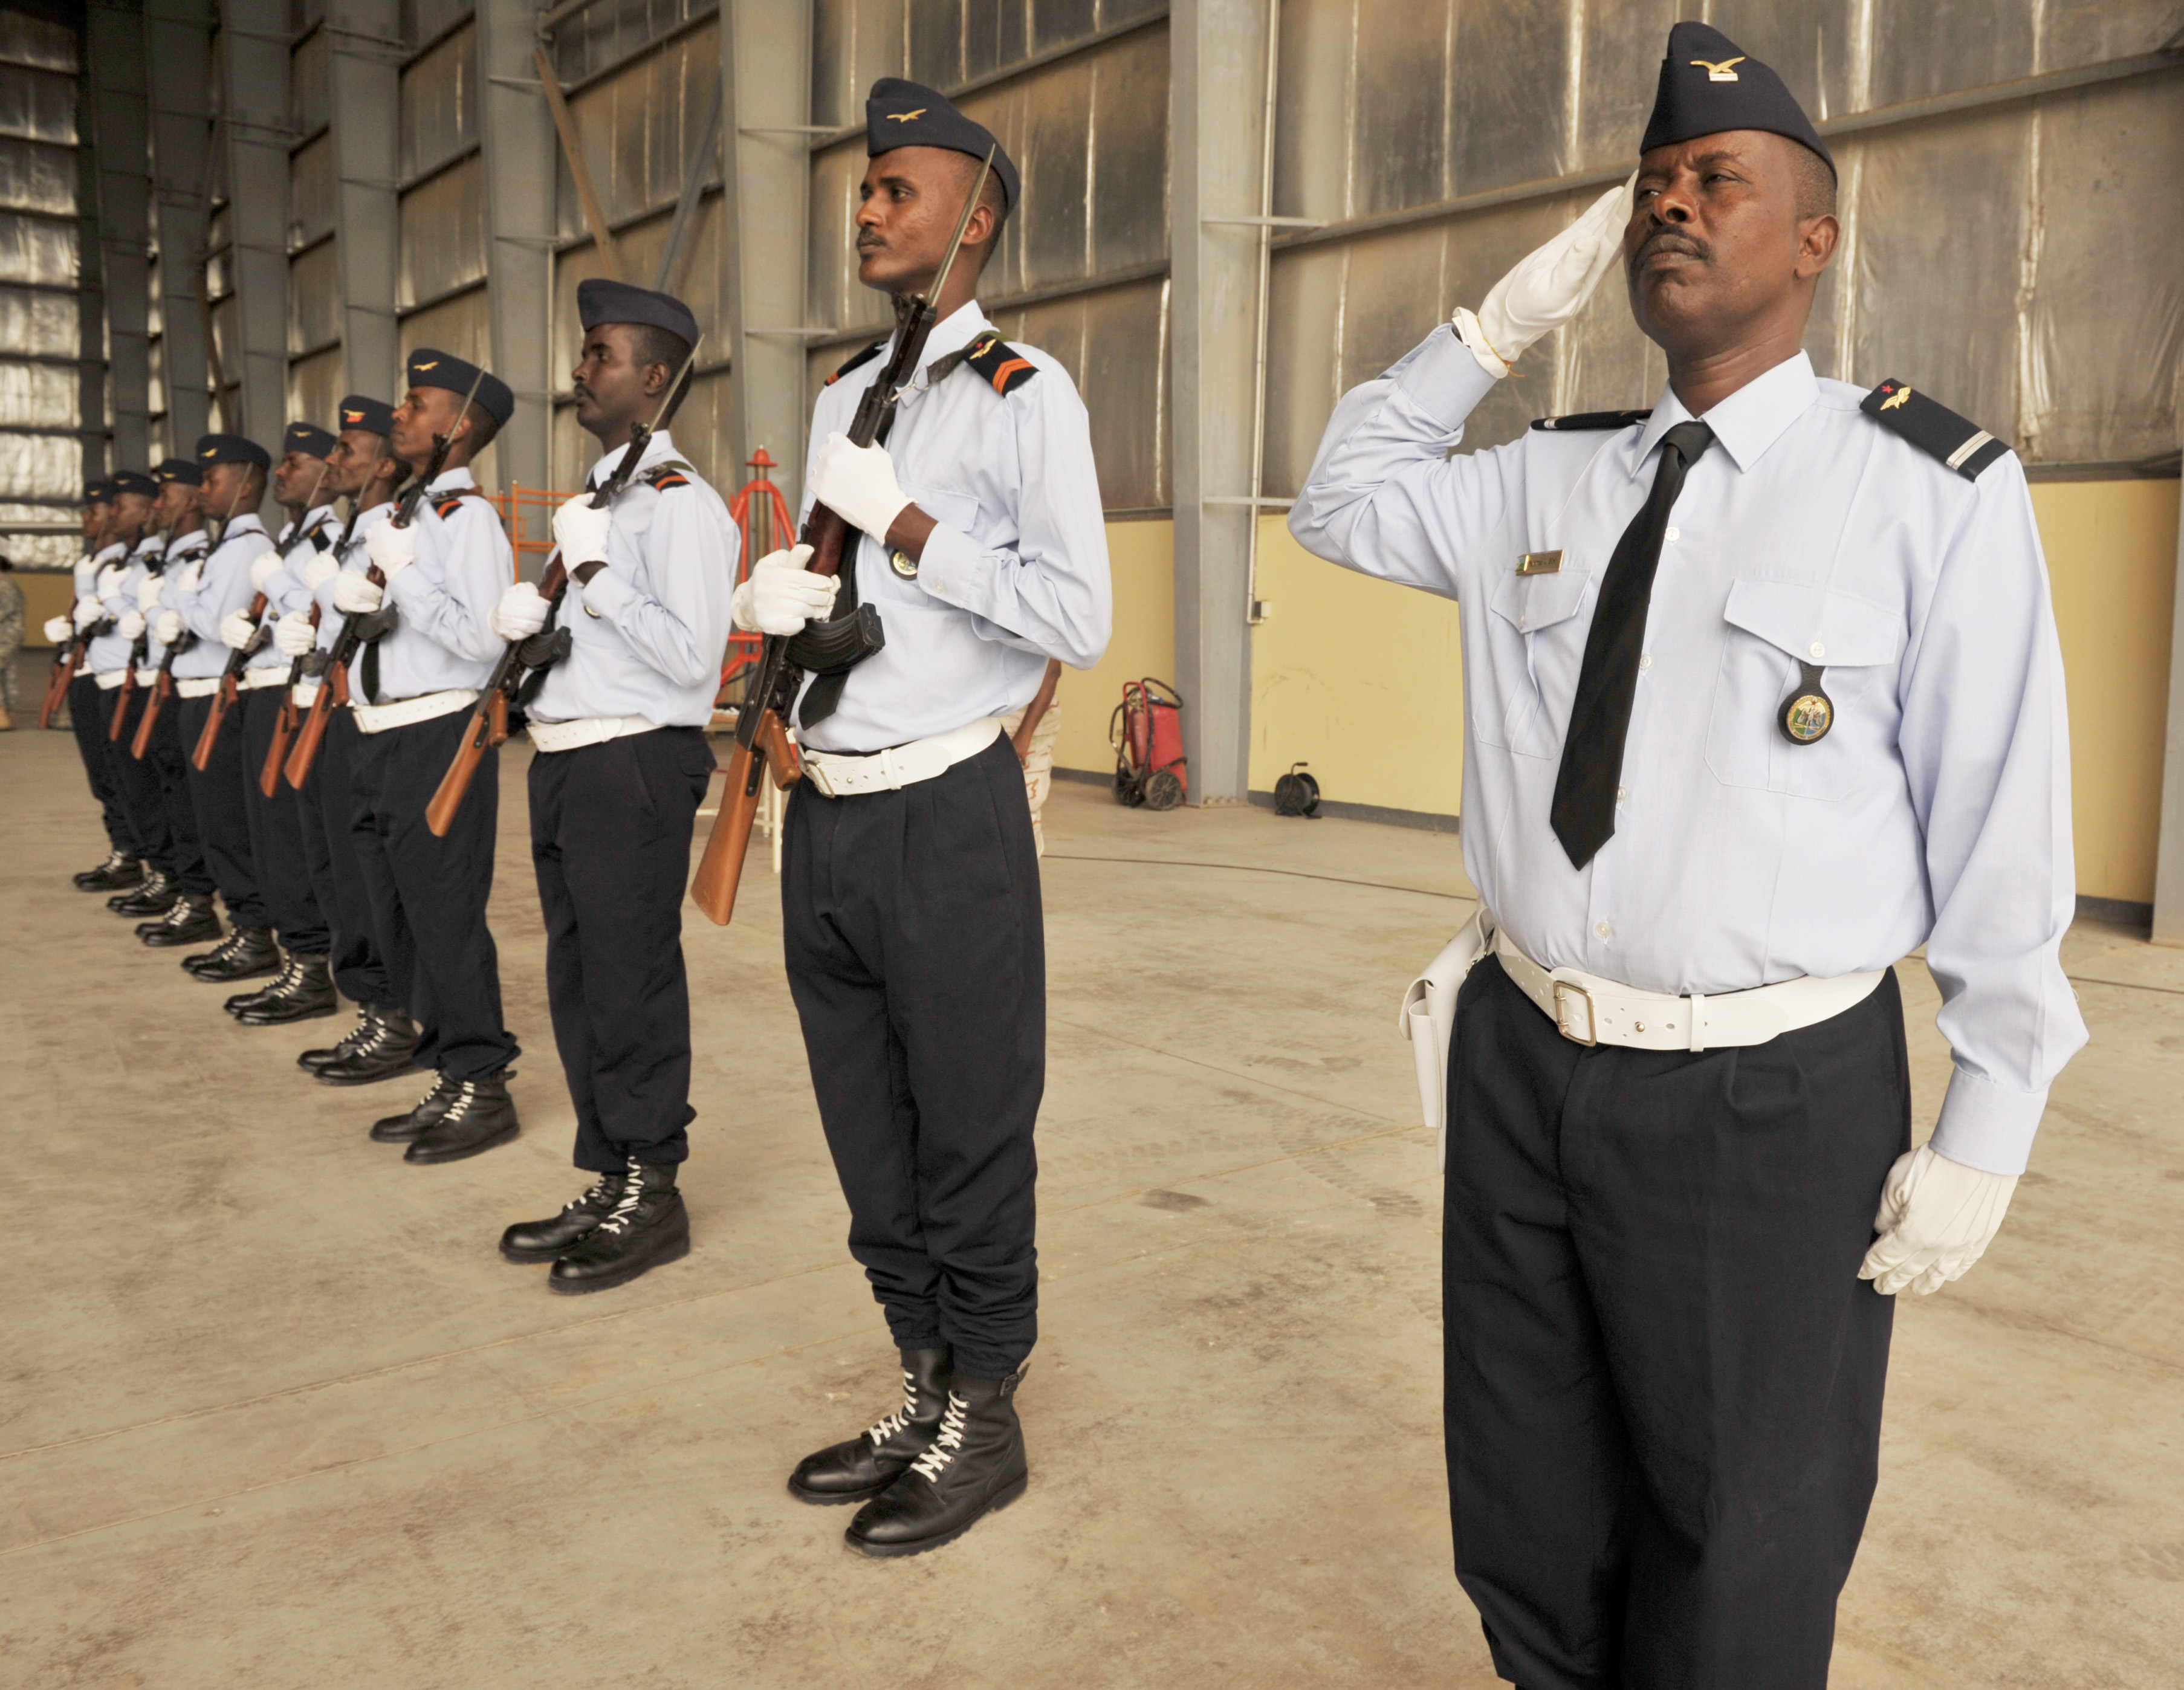 Members of the Djibouti air force honor guard render a salute during the closing ceremony for African Partnership Flight–Djibouti at Djibouti Air Base, Feb. 9, 2015. APF is the premiere program to bring together partner nations to increase cooperation and interoperability, which fosters stability and security throughout the continent. (U.S. Air Force Photo by Tech. Sgt. Ian Dean)